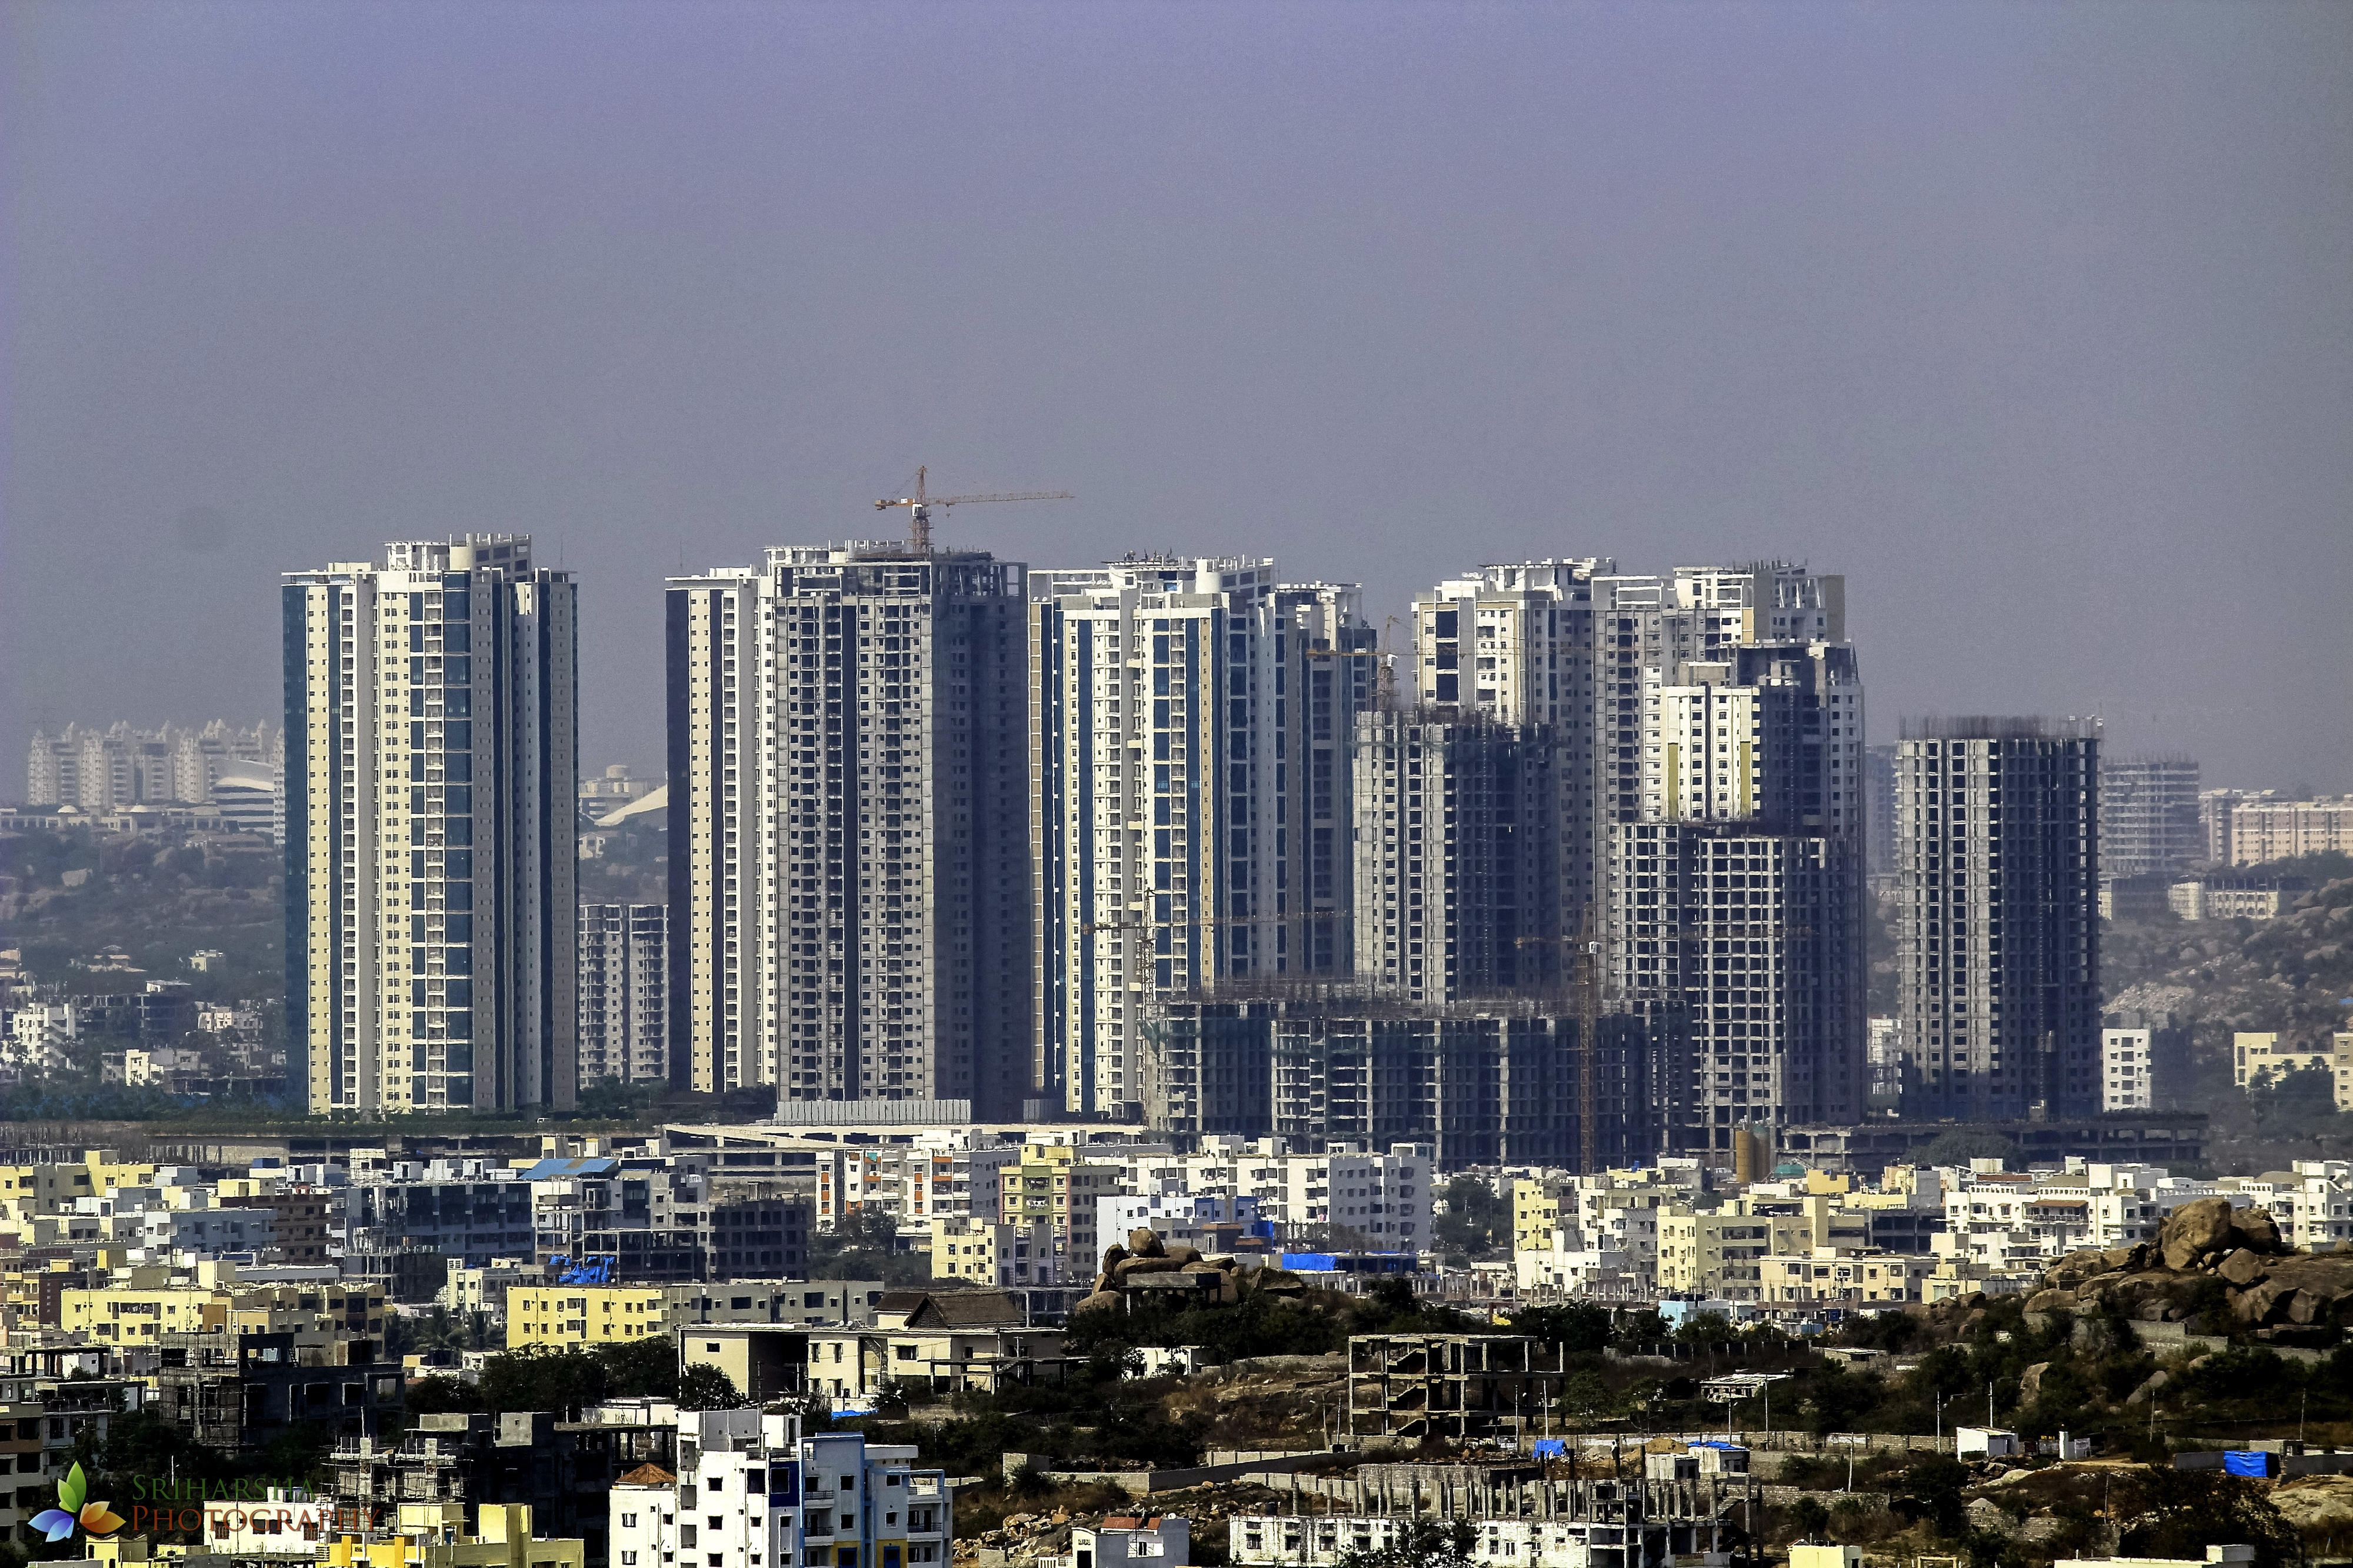 Skyline von Hyderabad, Indien